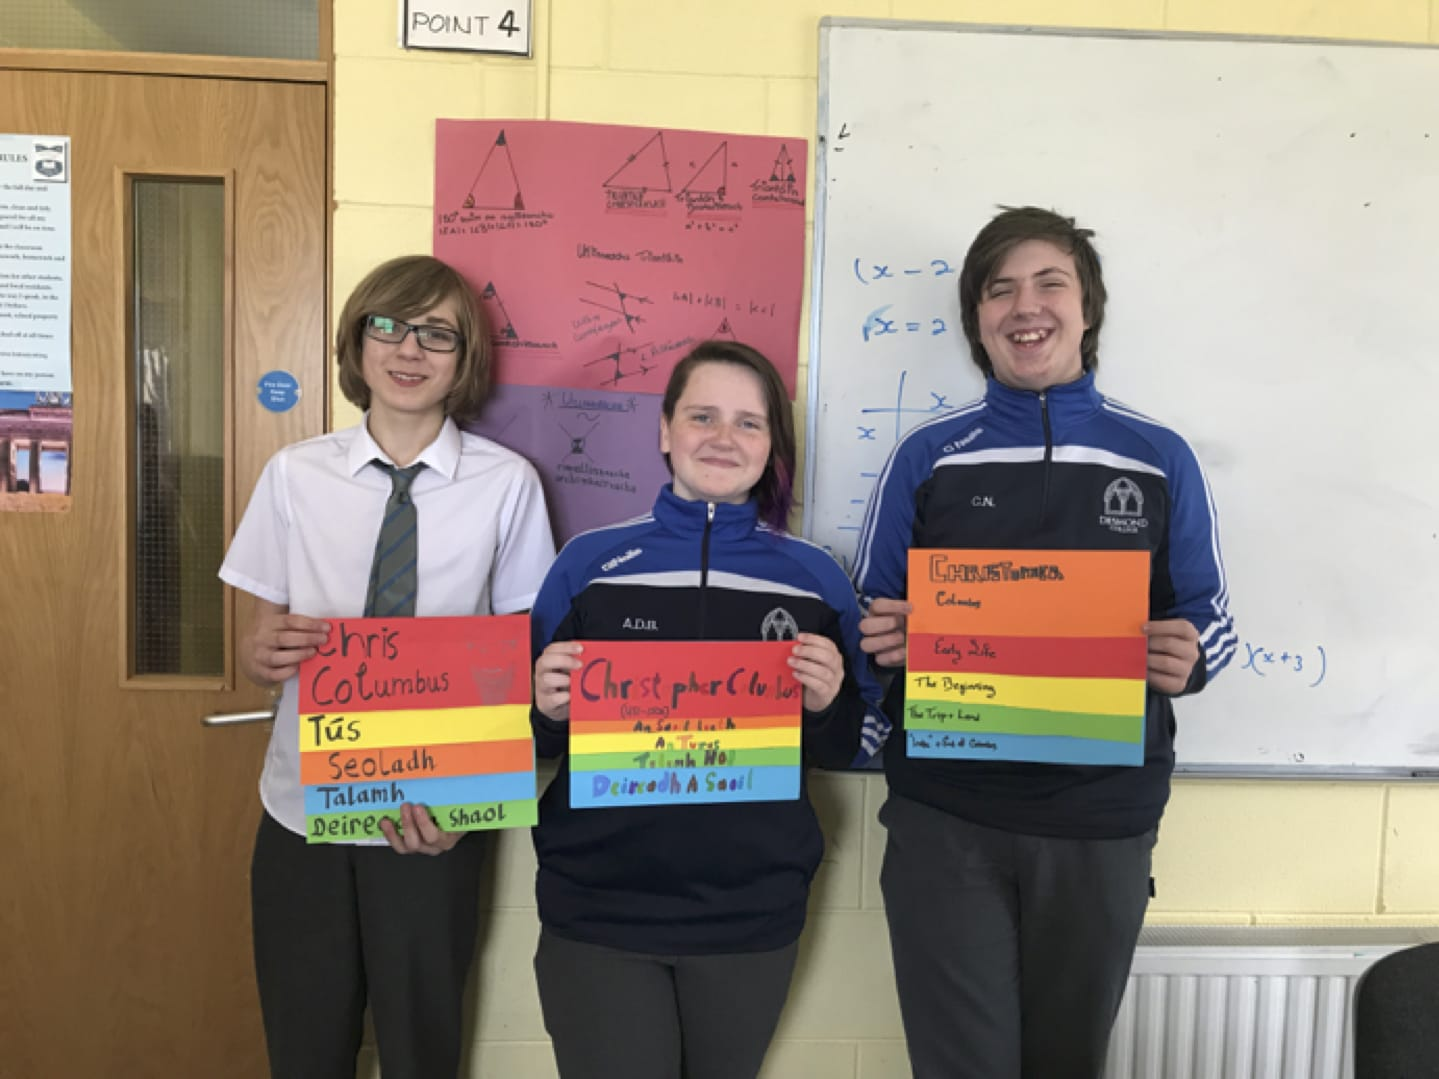 May 2017: 1st, 2nd and 3rd place winners in the Christopher Columbus History competition held in Gaelcholaiste Ui Chonba